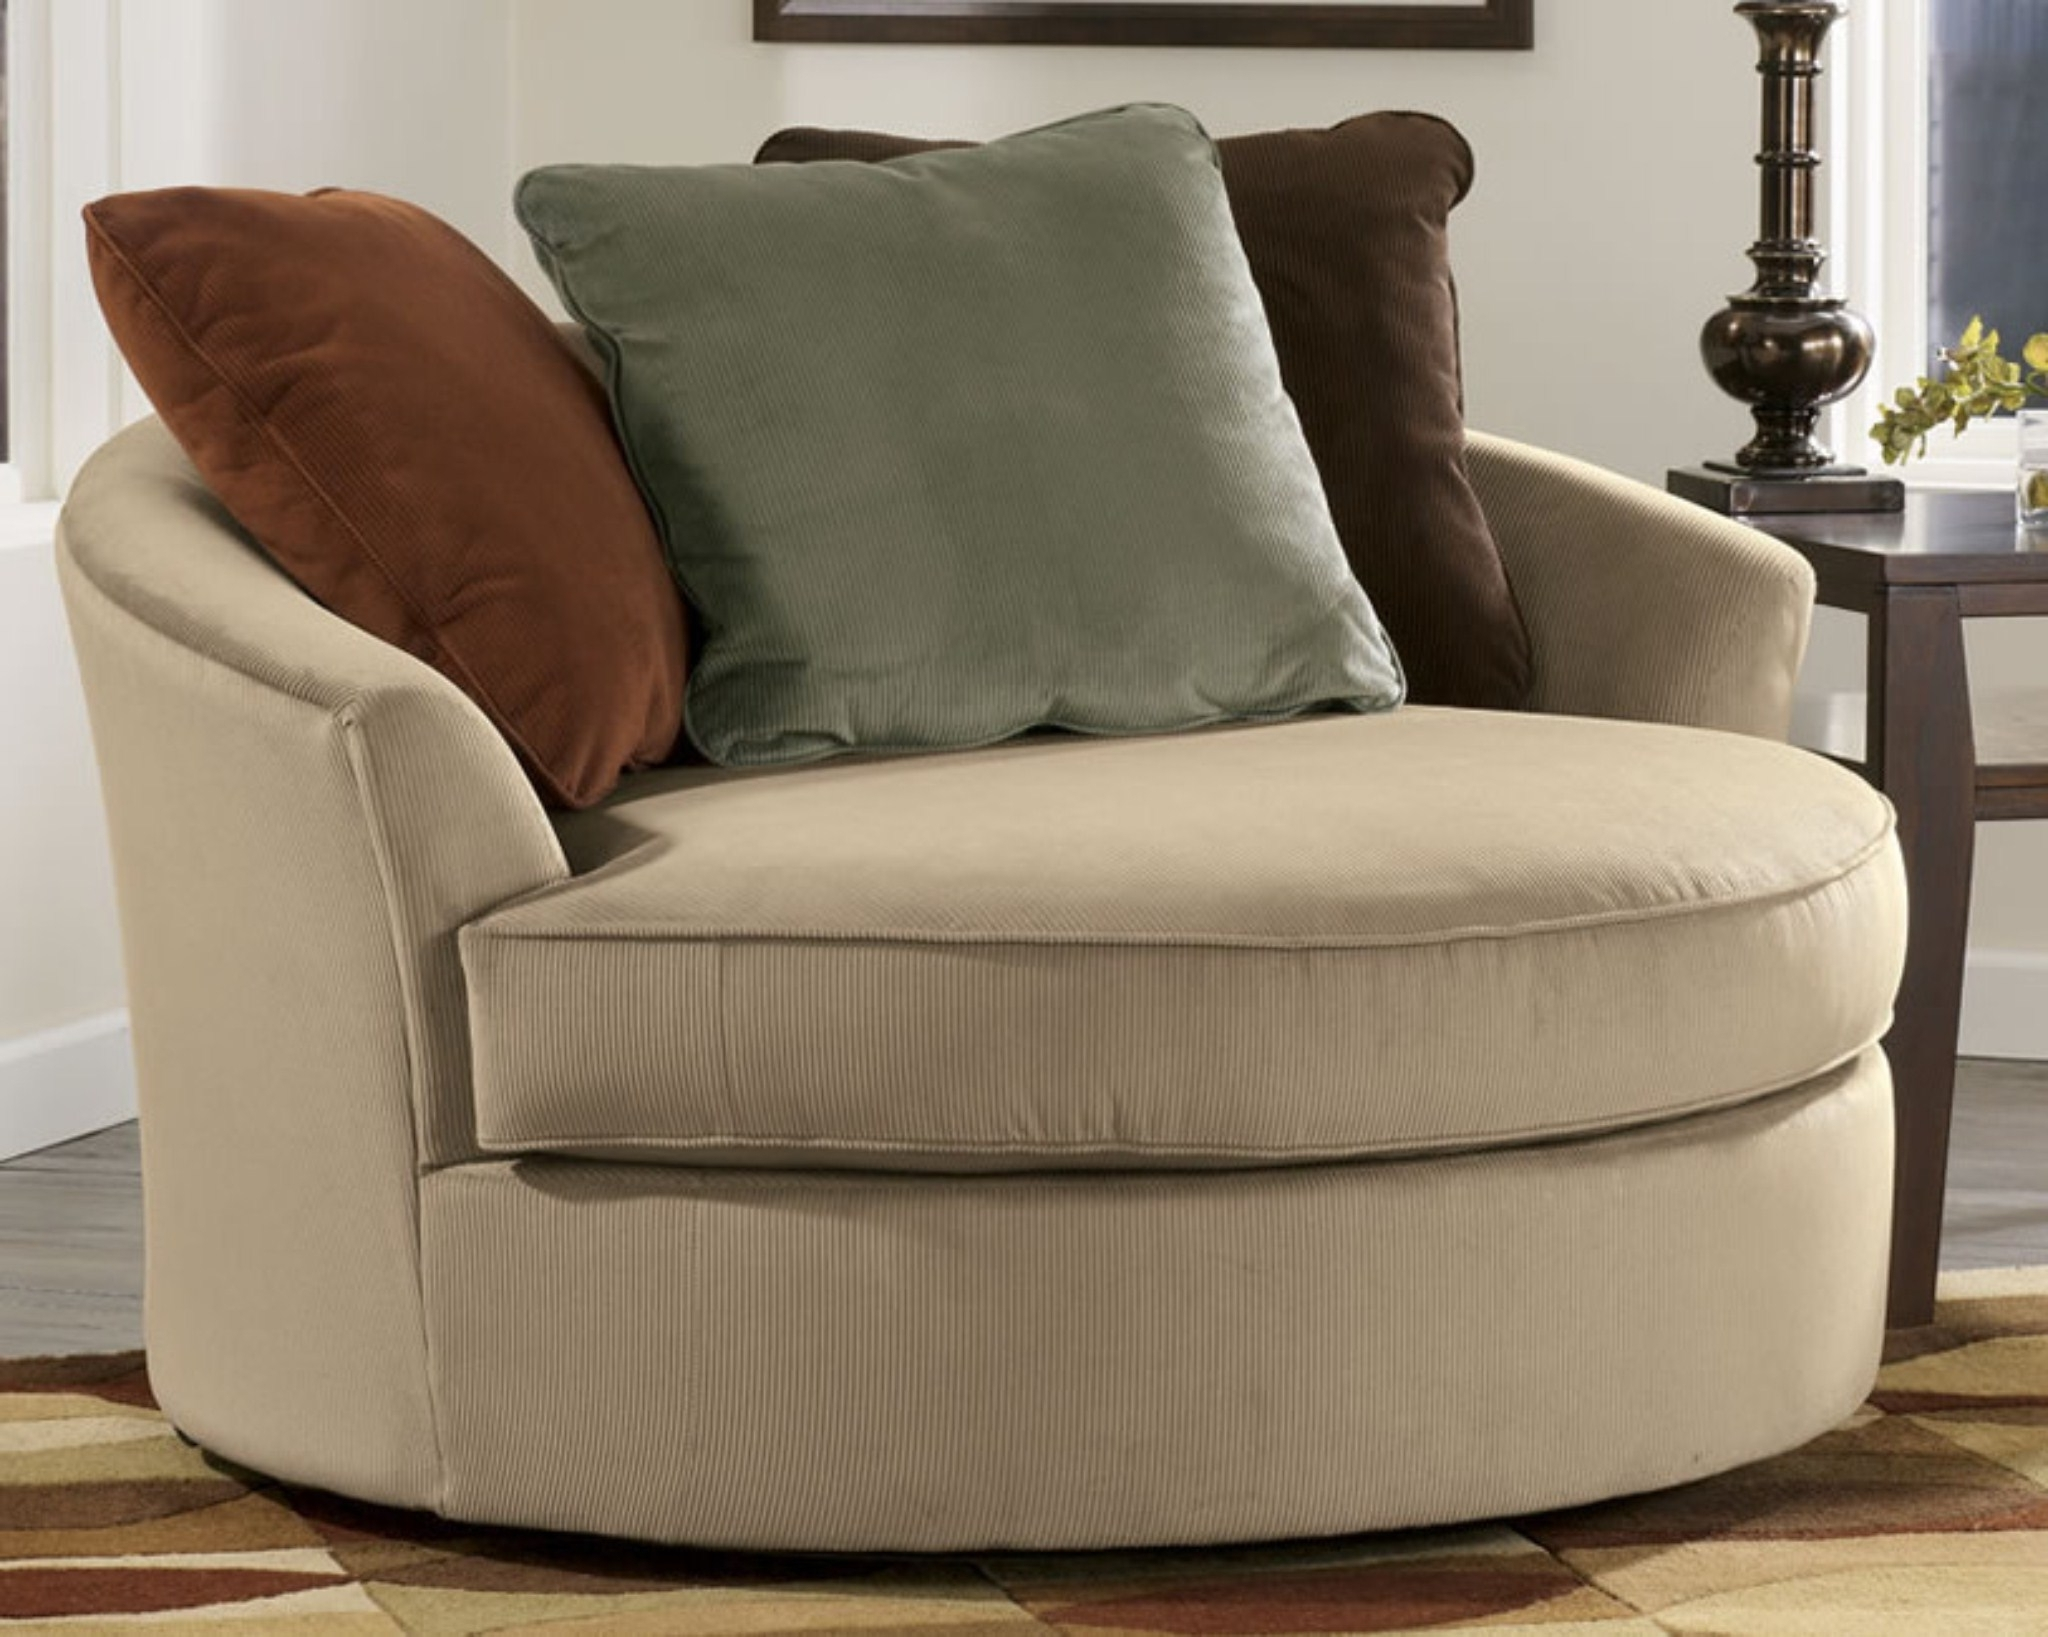 Swivel Sofa Chairs In Current Large Swivel Lounge Chair • Lounge Chairs Ideas (View 10 of 15)